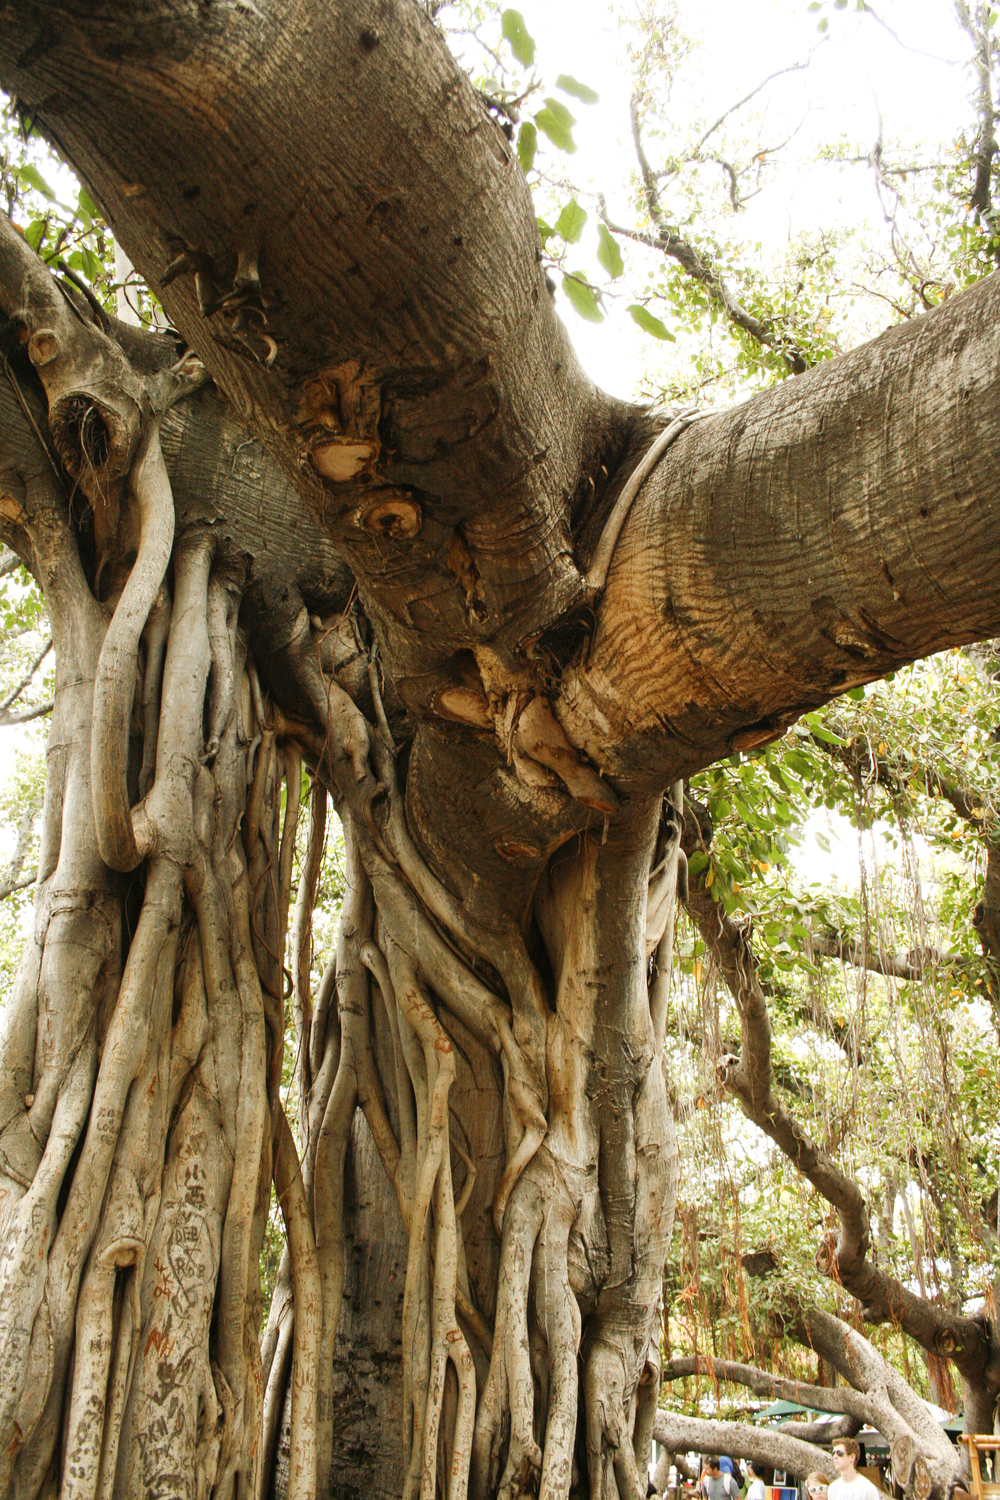 Banyan tree branch and root.